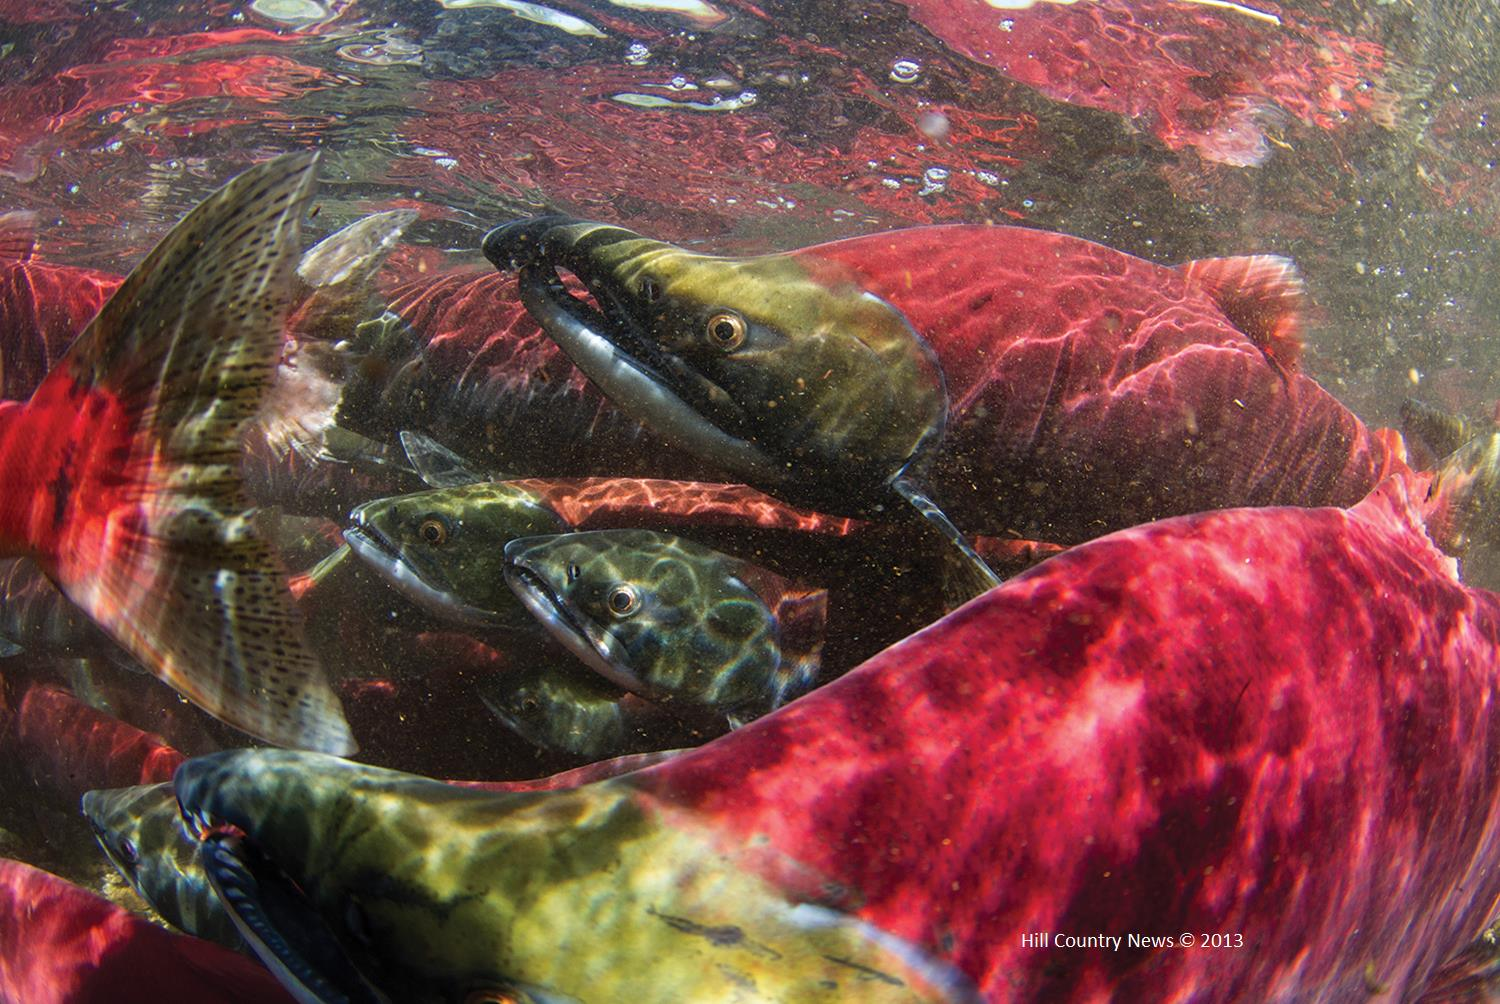 Earth Day Offers Bay Area a Chance to Improve Habitat for California's Most Endangered Salmon